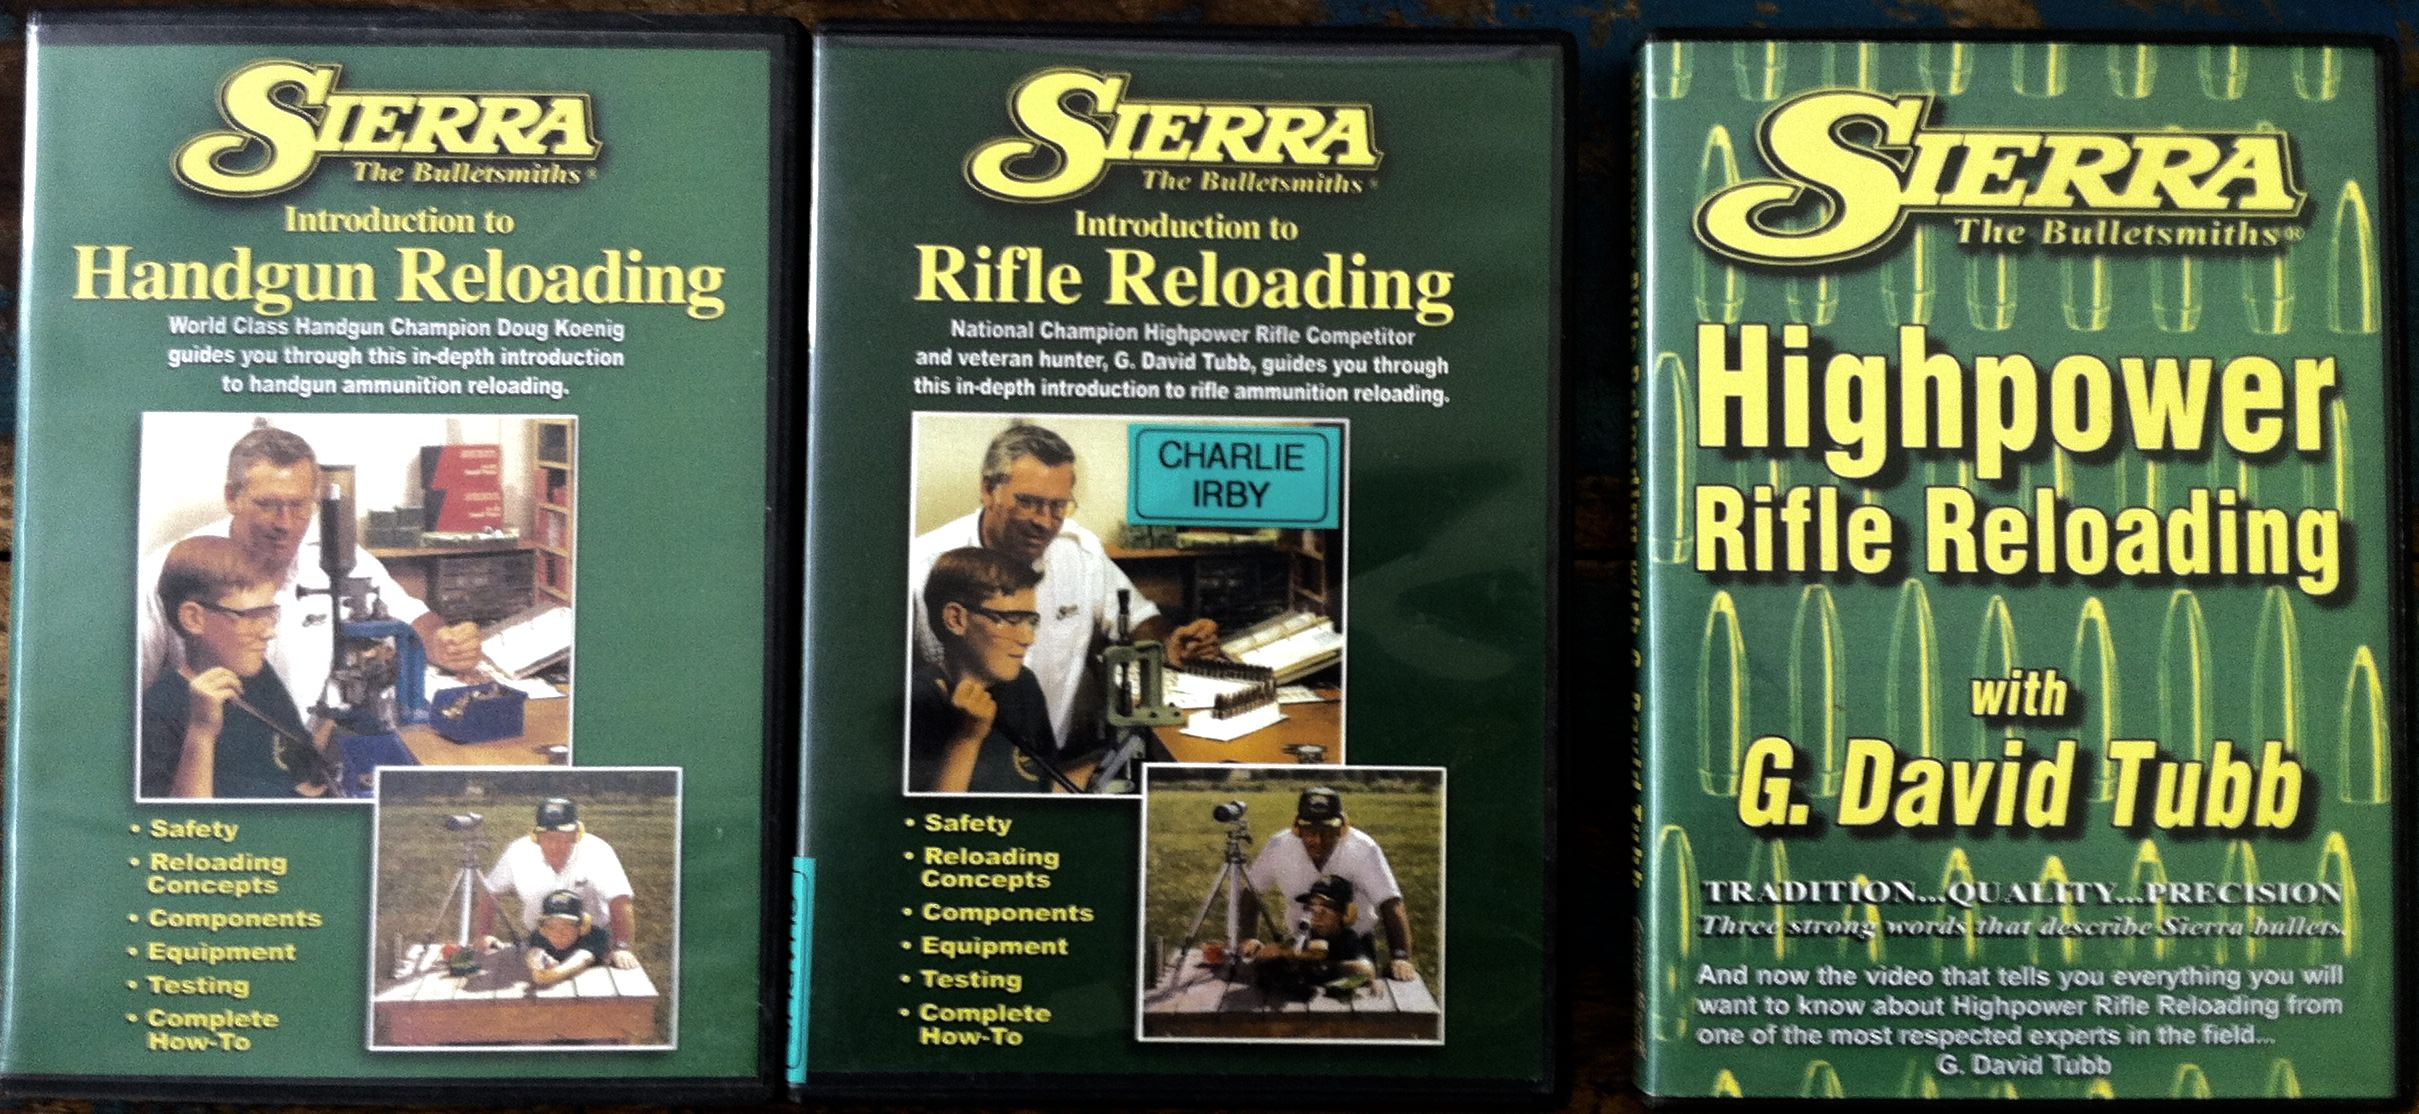 'HANDLOADING'...Building confidence in your newly acquired skill set... 1